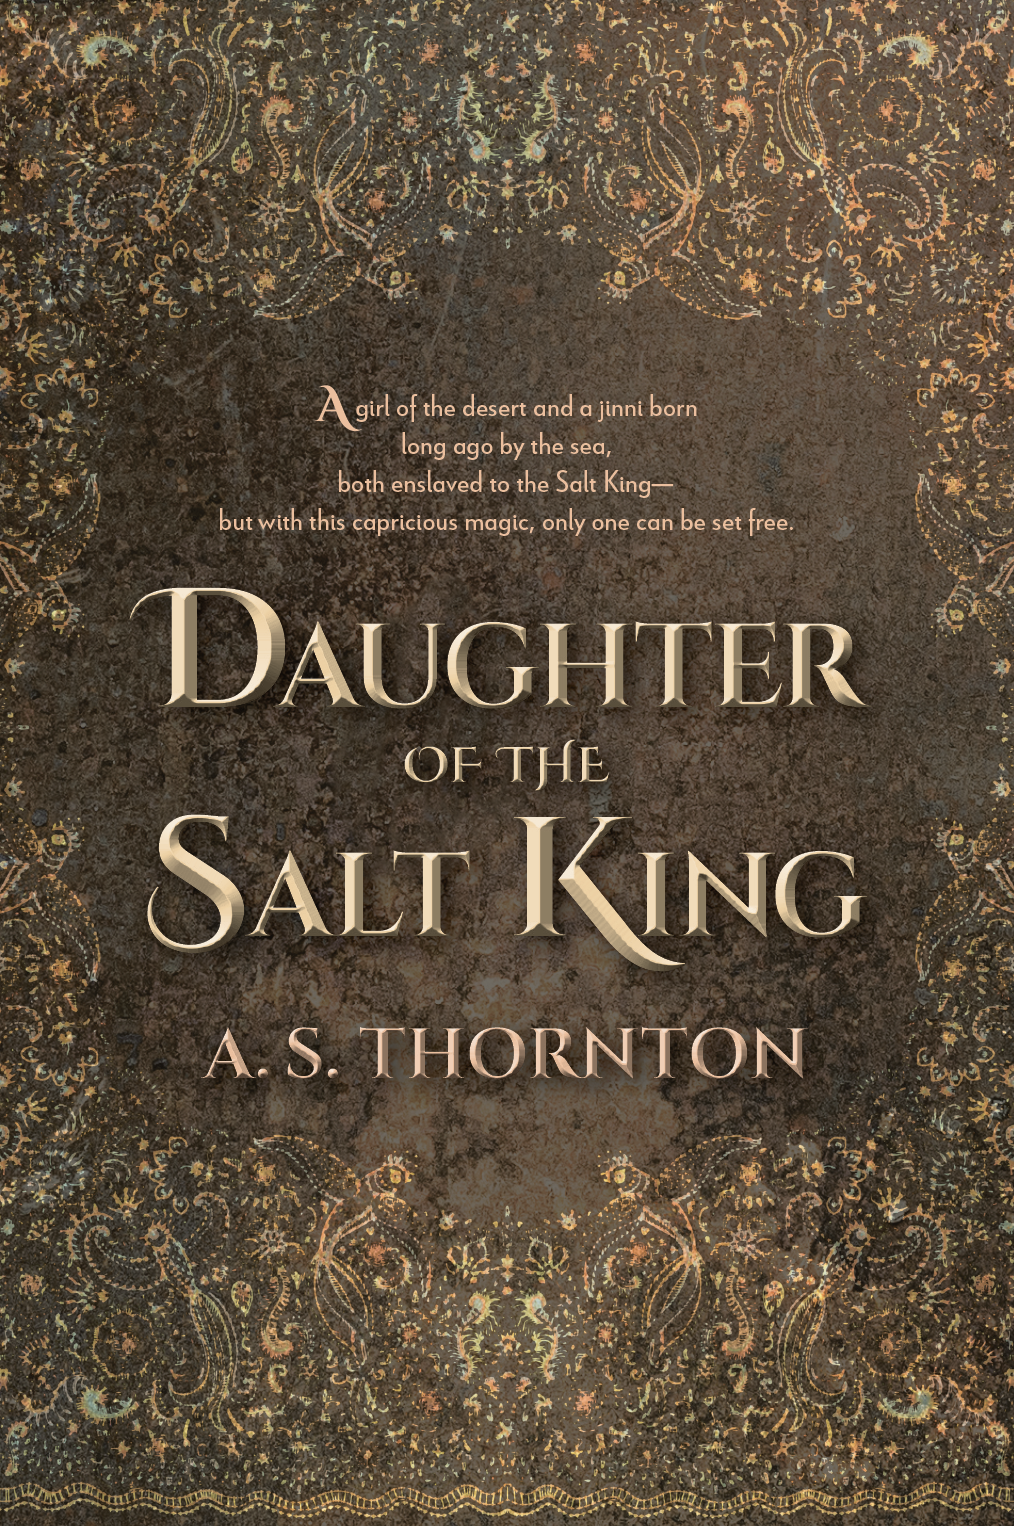 Daughter of the Salt King